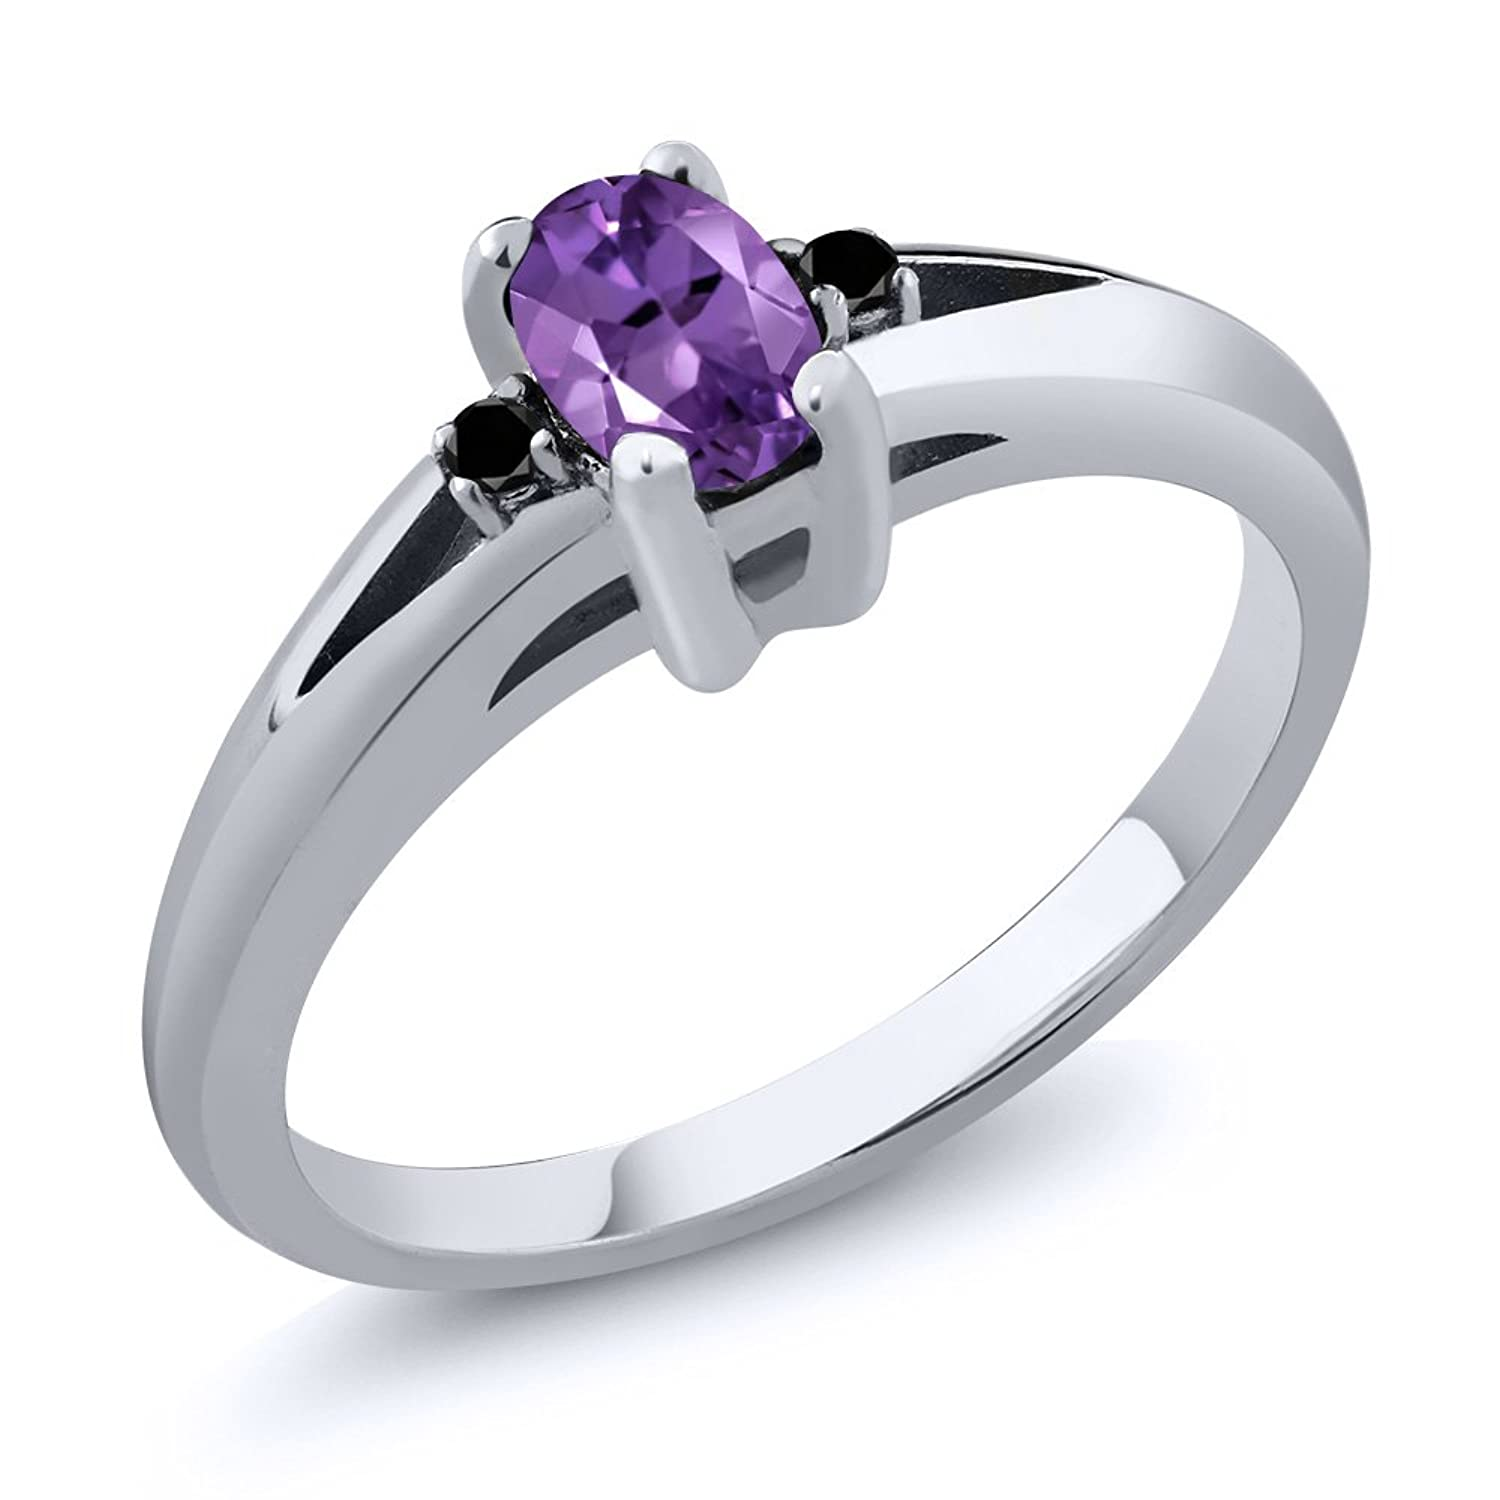 0.49 Ct Oval Amethyst and Black Diamond 925 Sterling Silver 3-Stone Women's Ring (Available in size 5, 6, 7, 8, 9)